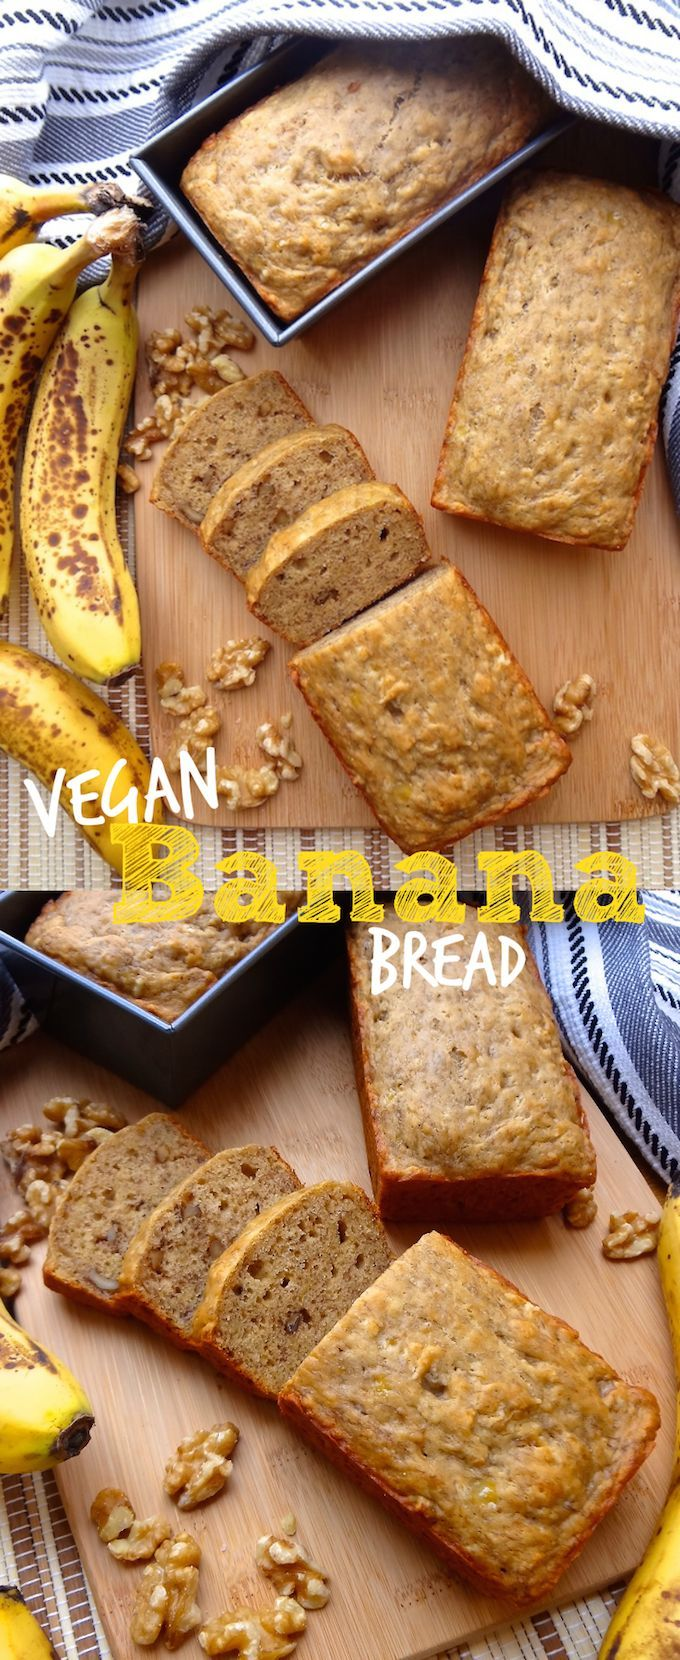 Banana bread recipe vegan simple